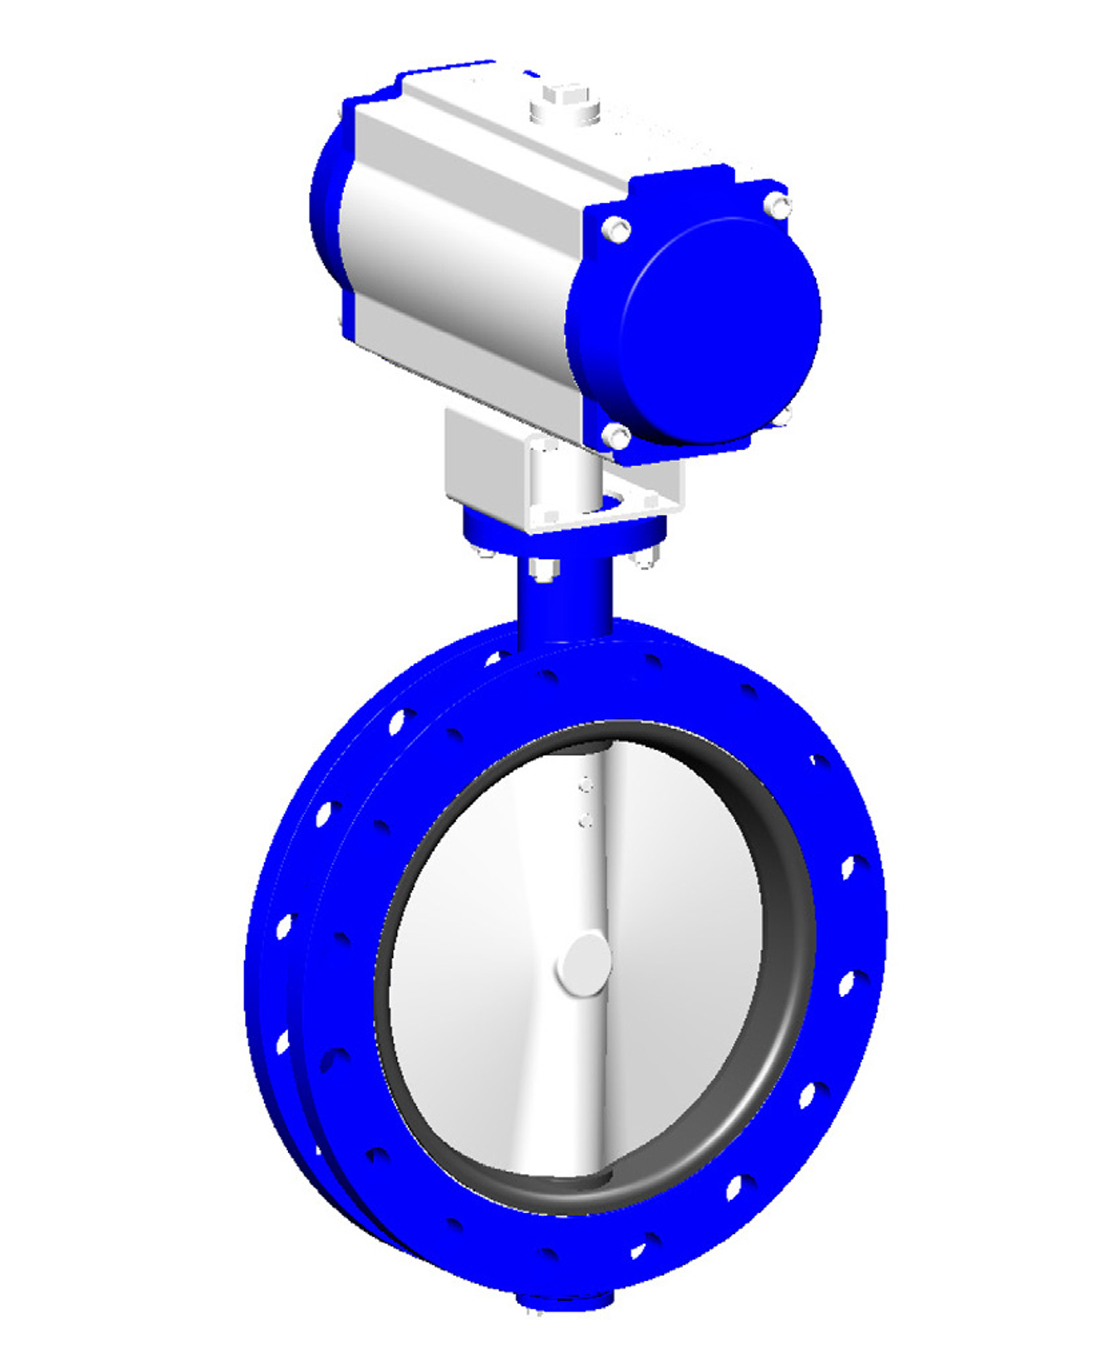 Double flanges type butterfly valve PN10 – ductile iron body – stainless steel disc – double acting pneumatic operator